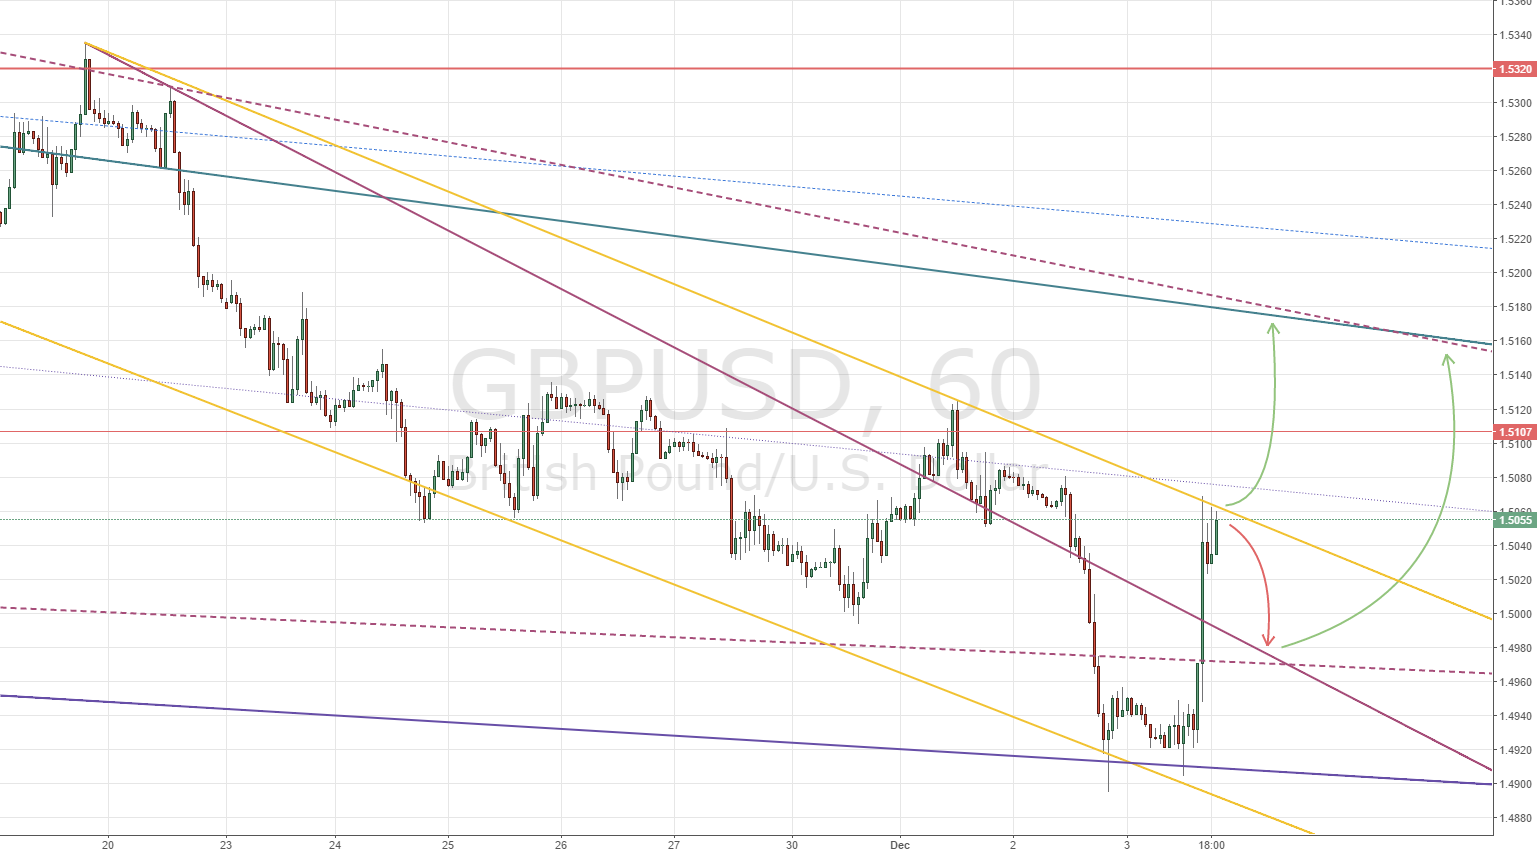 GBPUSD at pivot level 1.5060